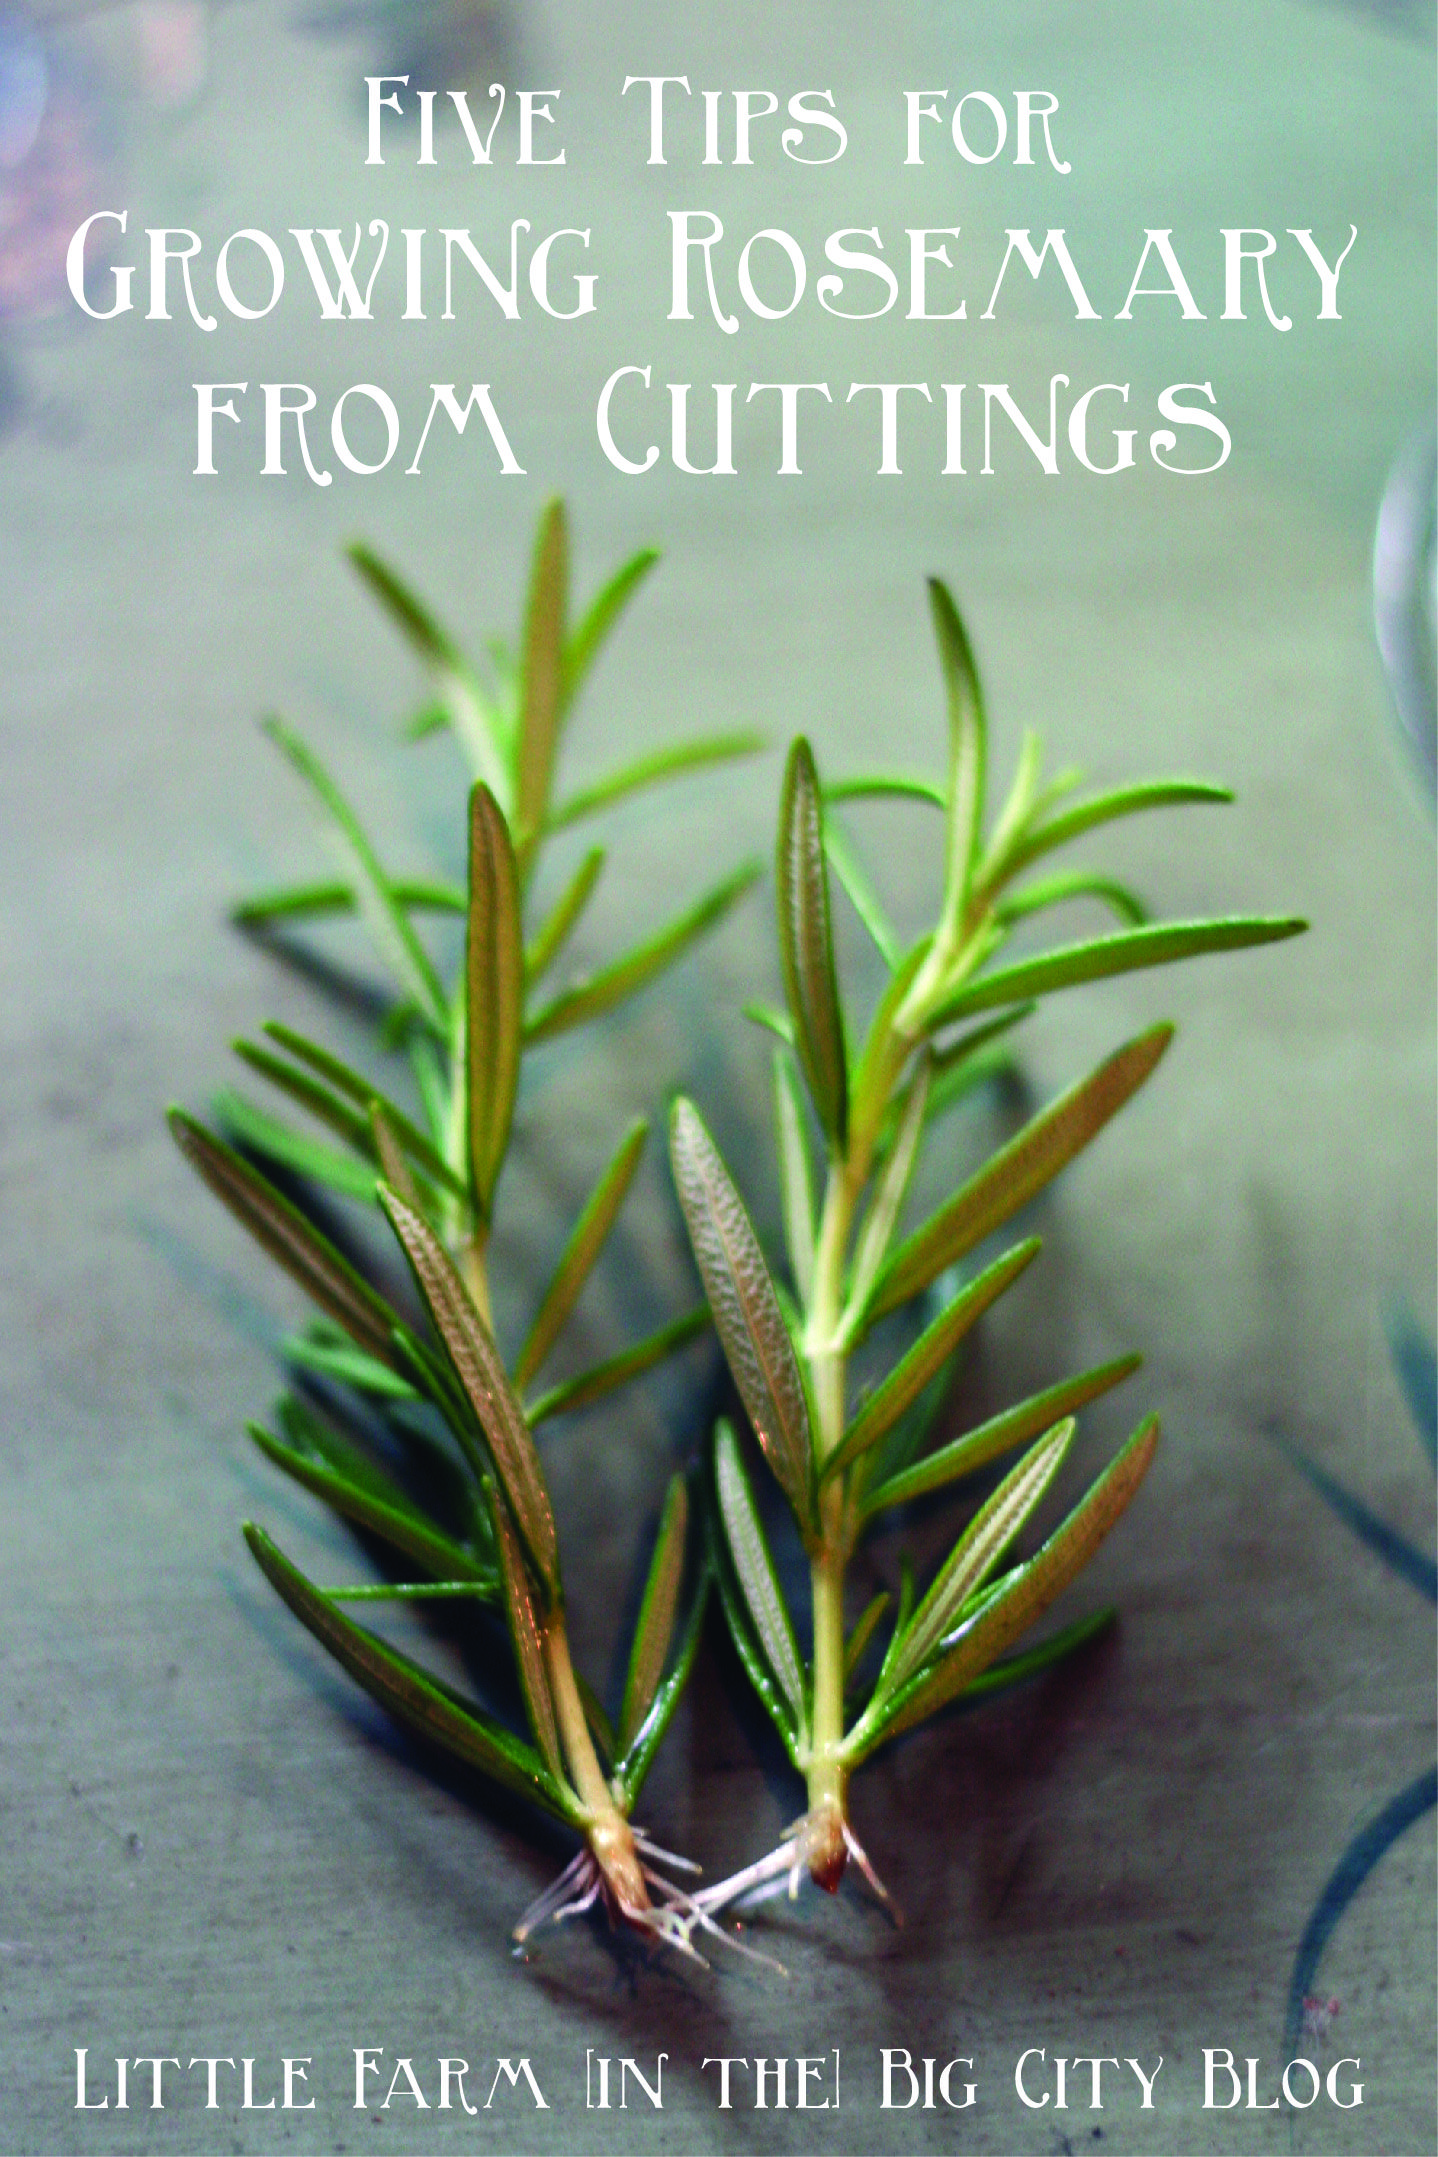 How to Grow Rosemary from Cuttings \u2013 5 Tips | Cuttings, Plants and ...